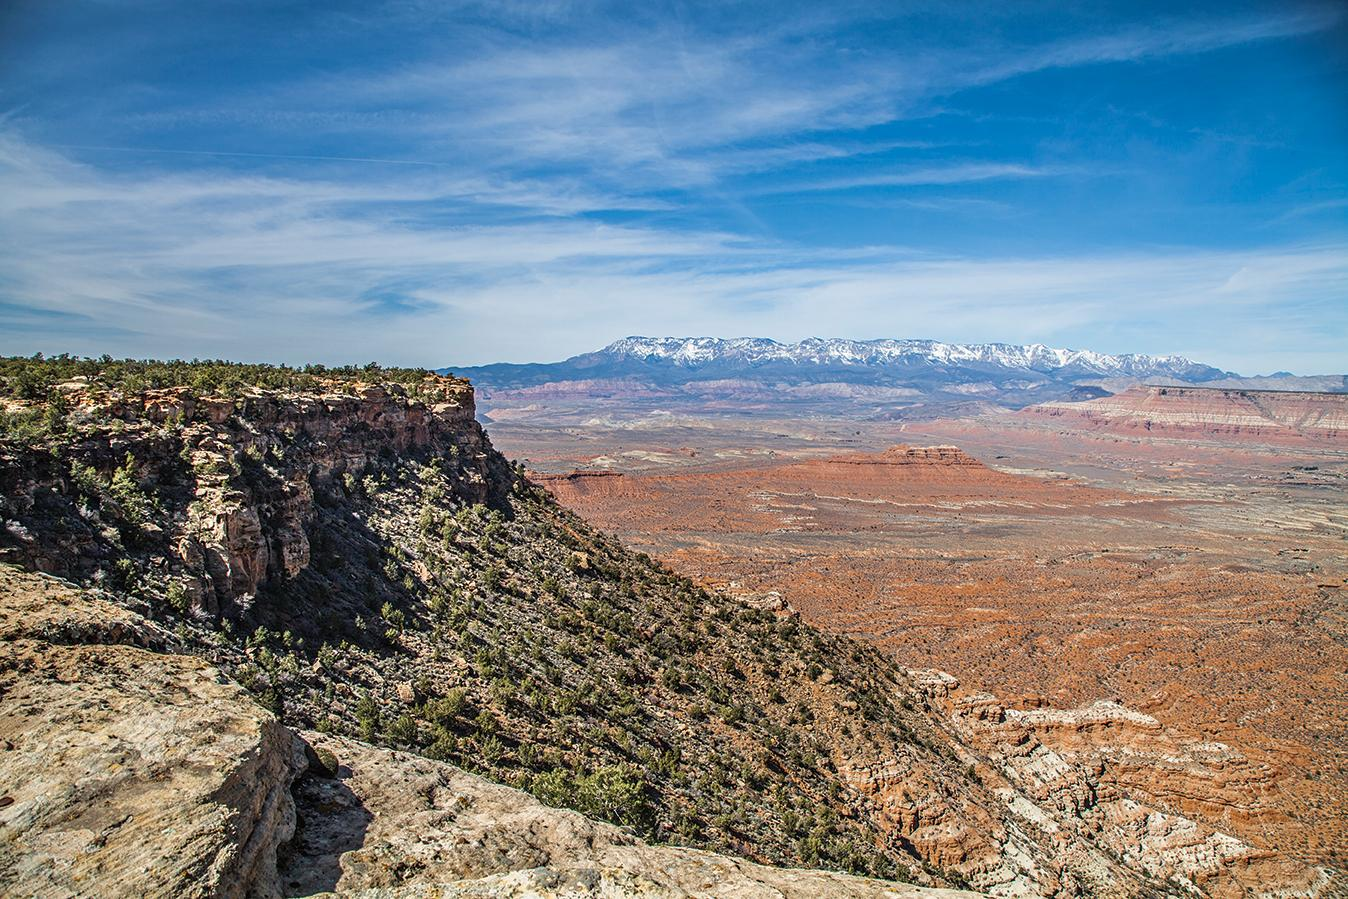 Gooseberry Mesa offers challenging rock-hopping